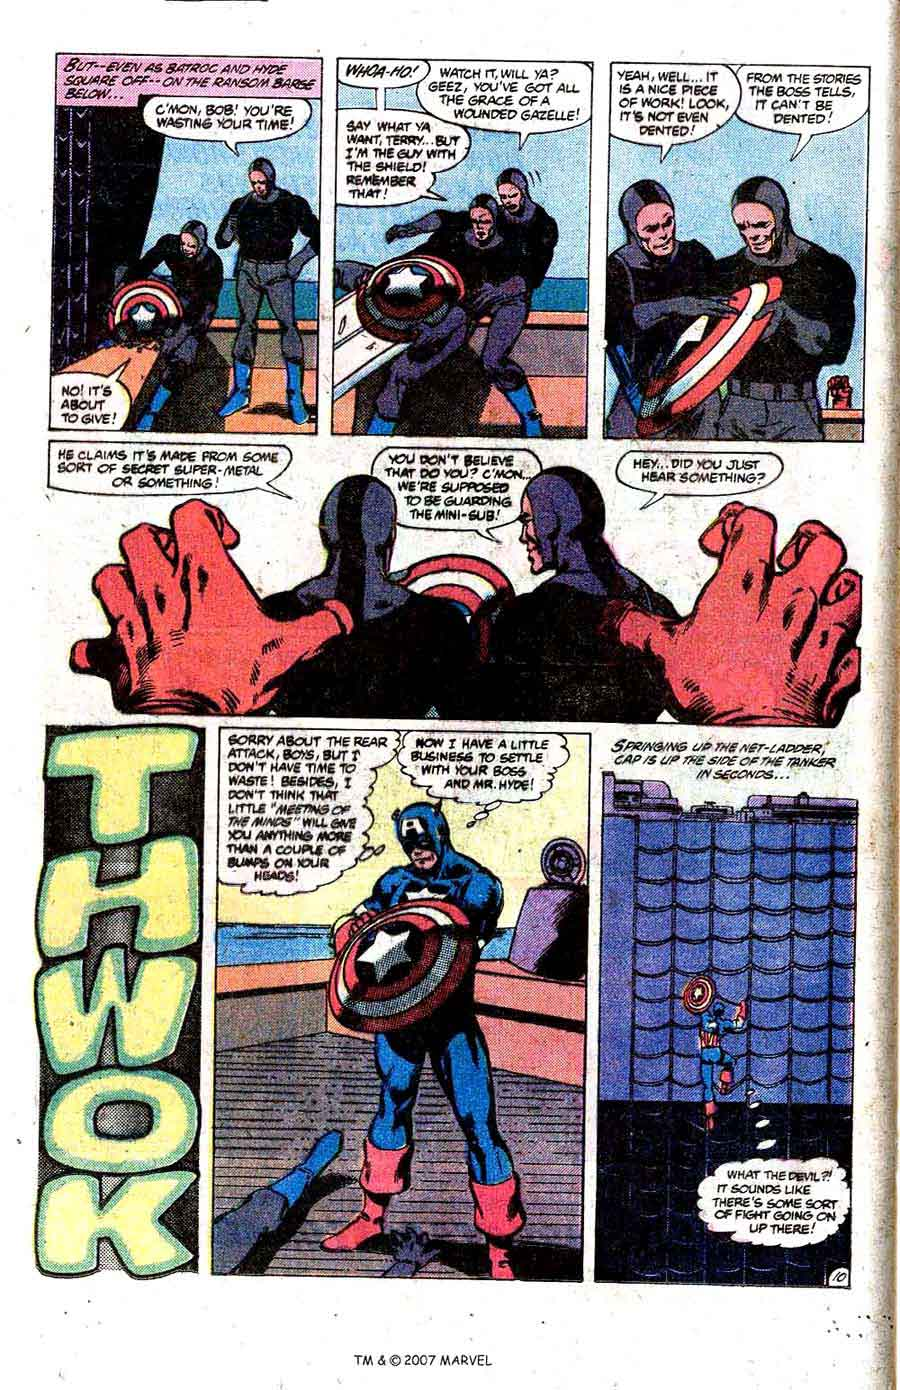 Captain America #252 marvel 1980s bronze age comic book page art by John Byrne